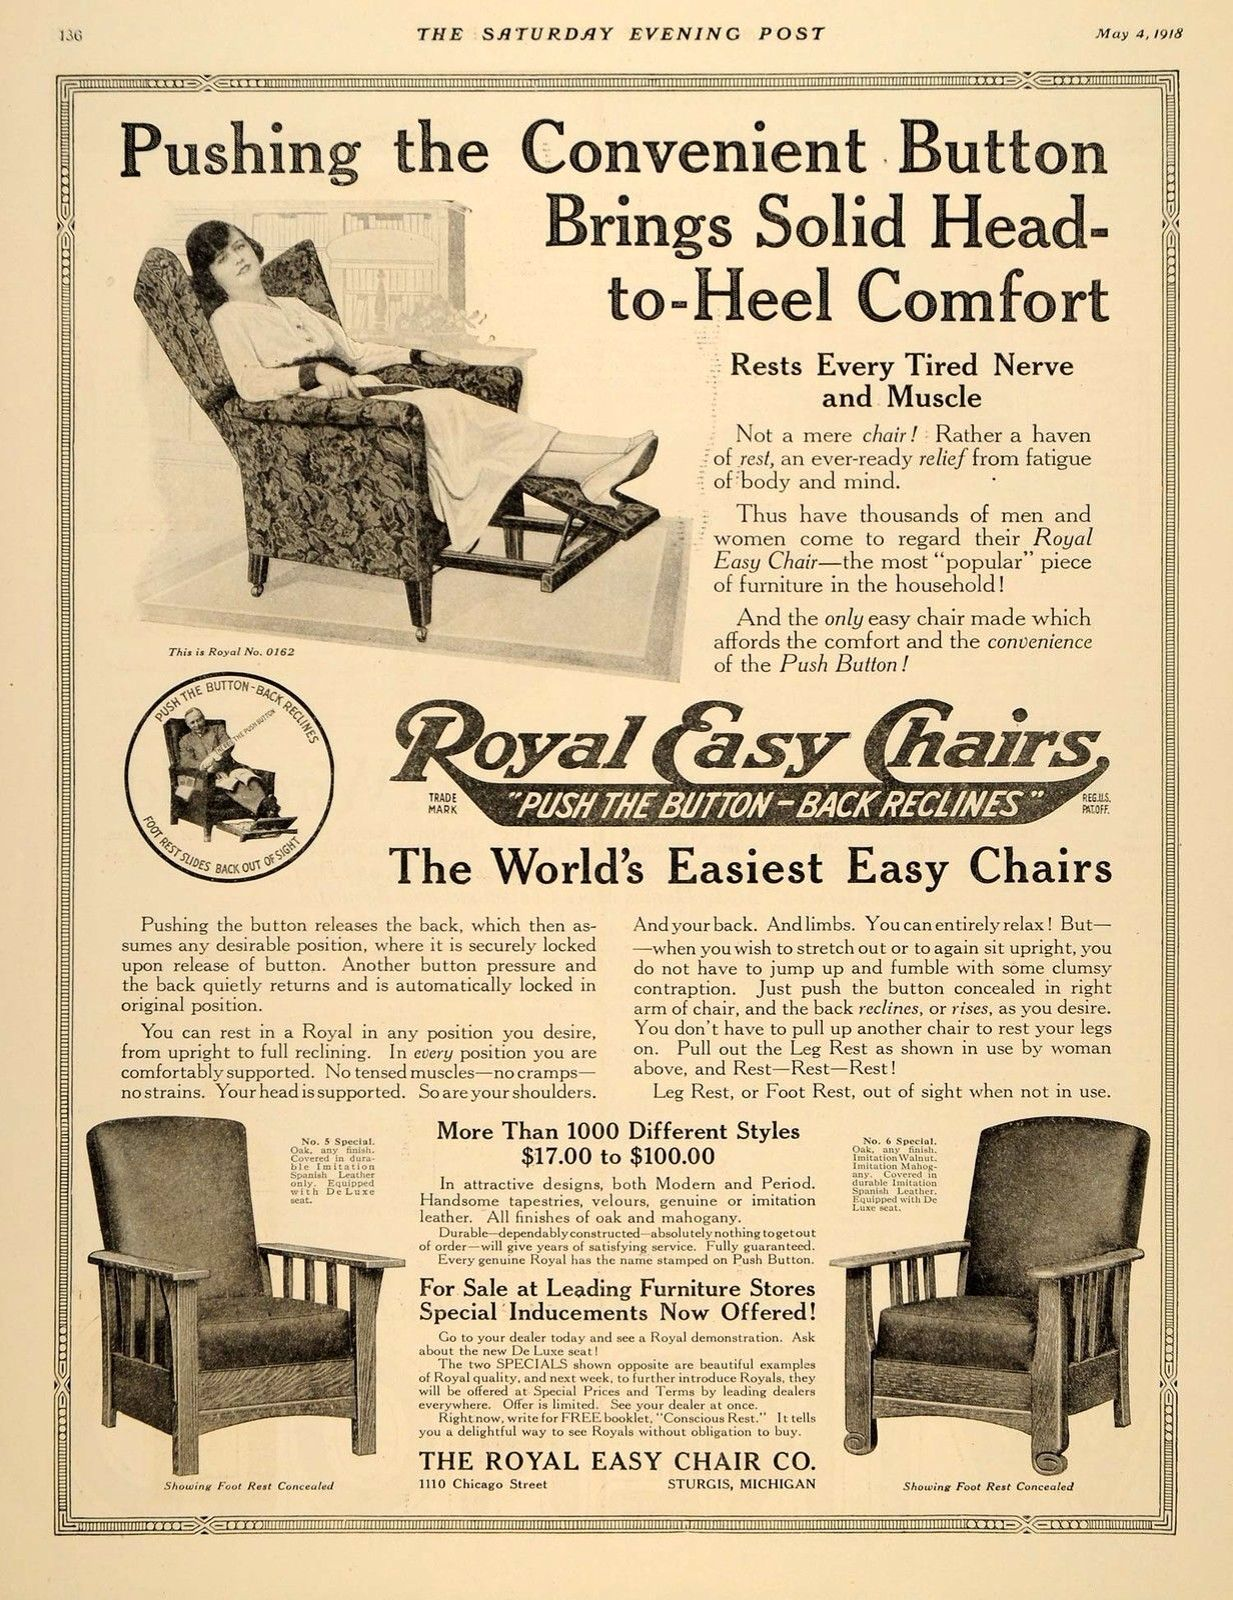 Superior 1918 Ad For Royal Push Button Chair